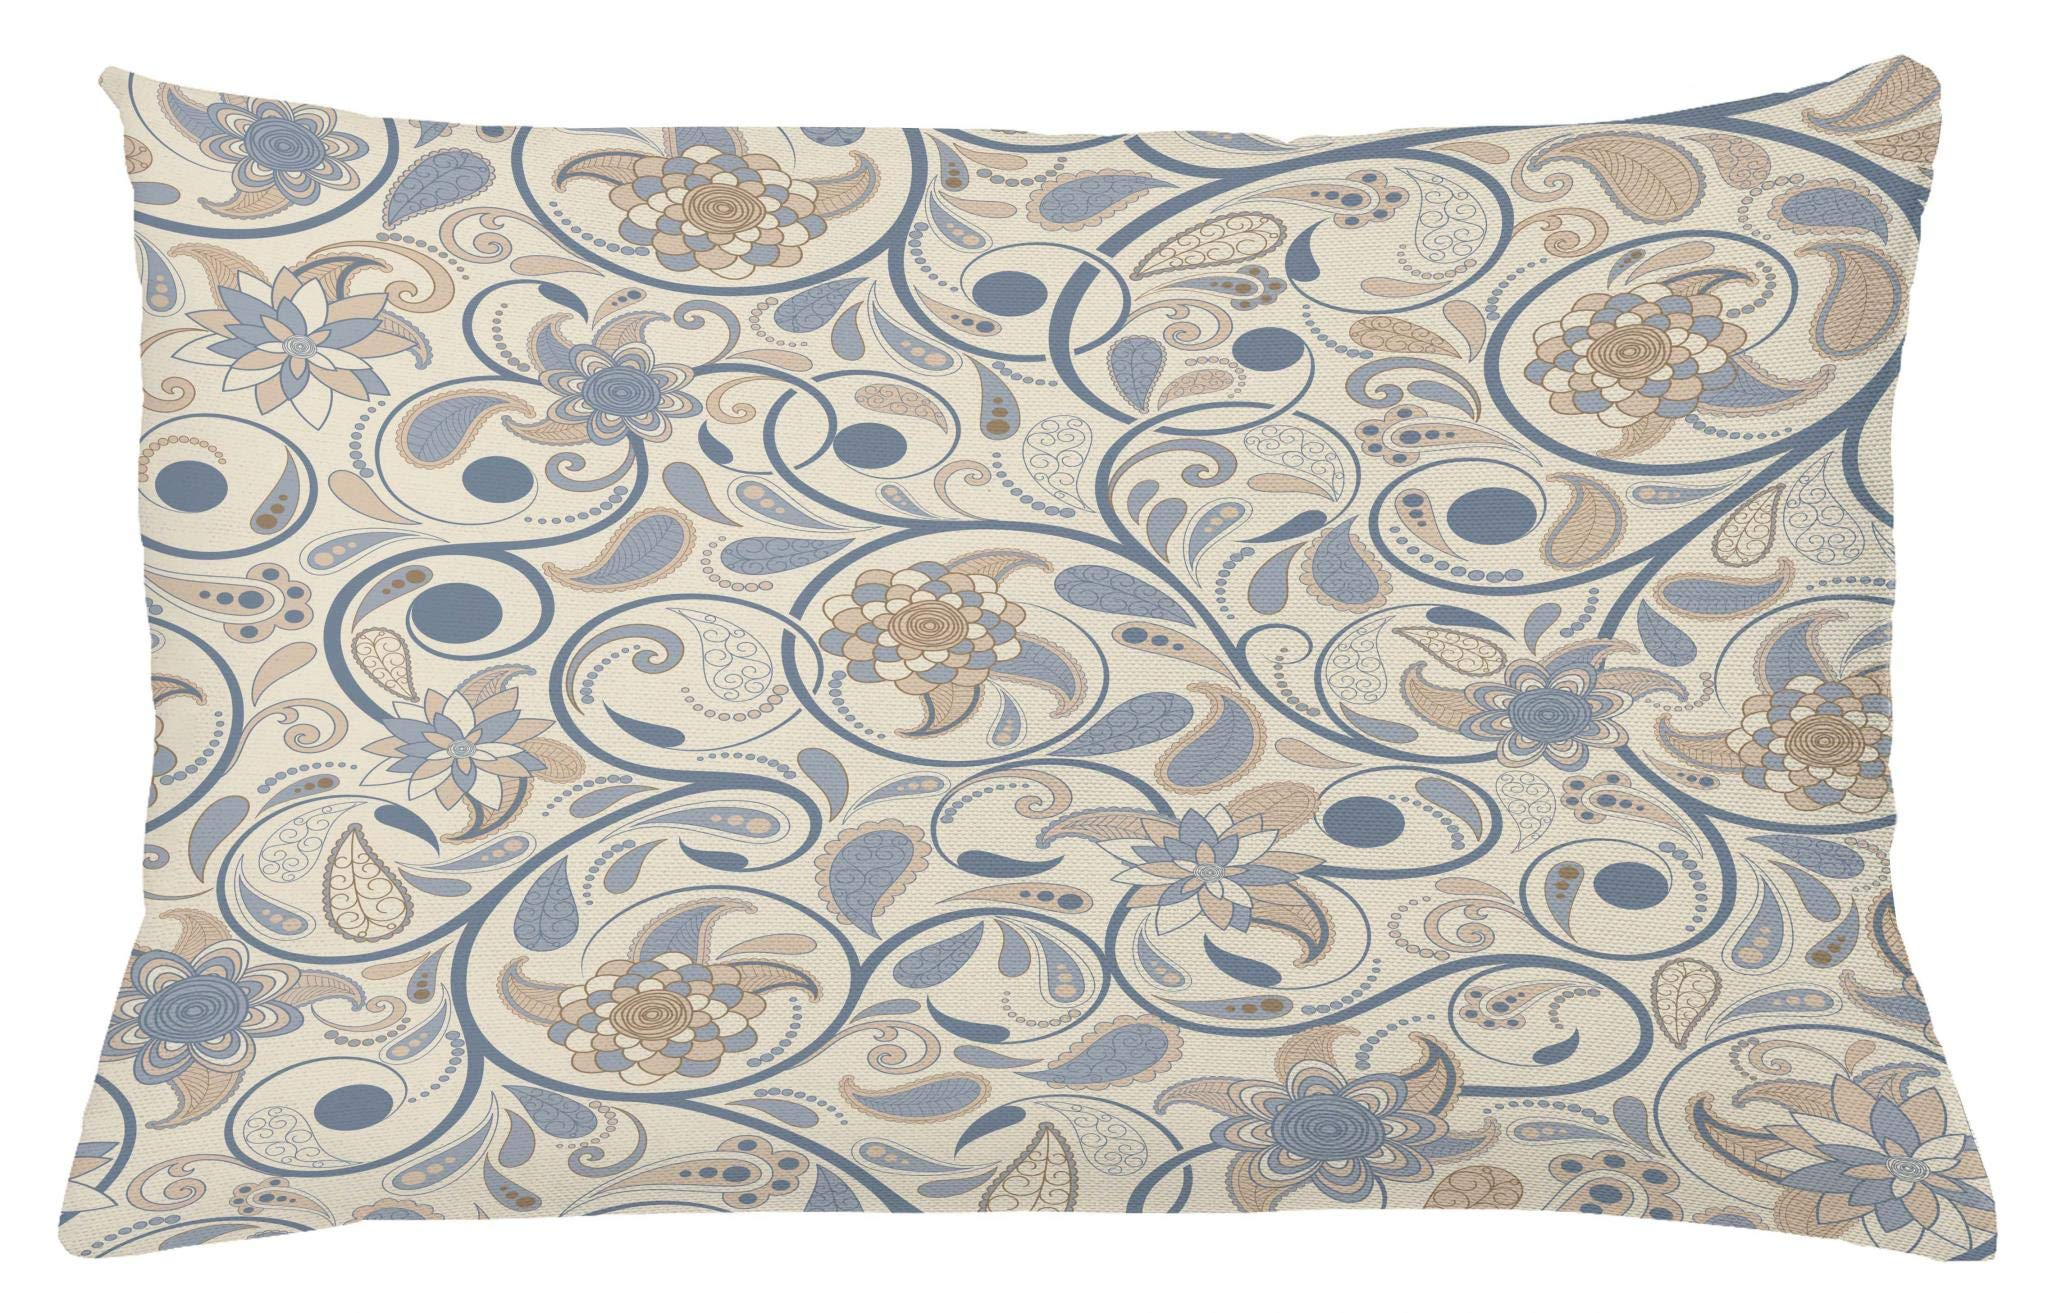 Ambesonne Vintage Throw Pillow Cushion Cover, Oriental Scroll with Swirling Leaves with Eastern Design Inspirations, Decorative Square Accent Pillow Case, 26 X 16 Inches, Beige Tan Slate Blue